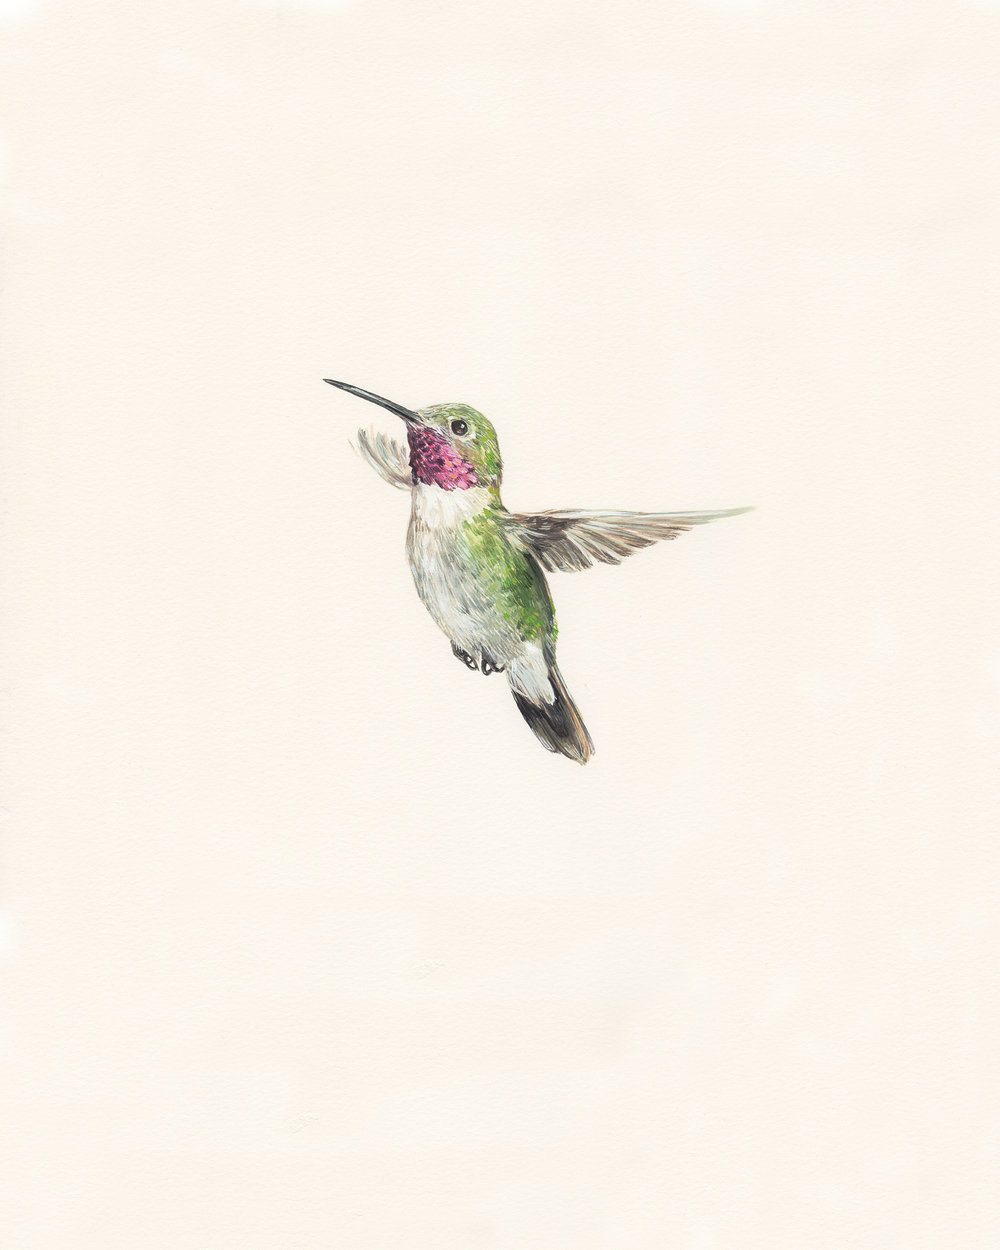 Broad-tailed hummingbird. Guache on paper.